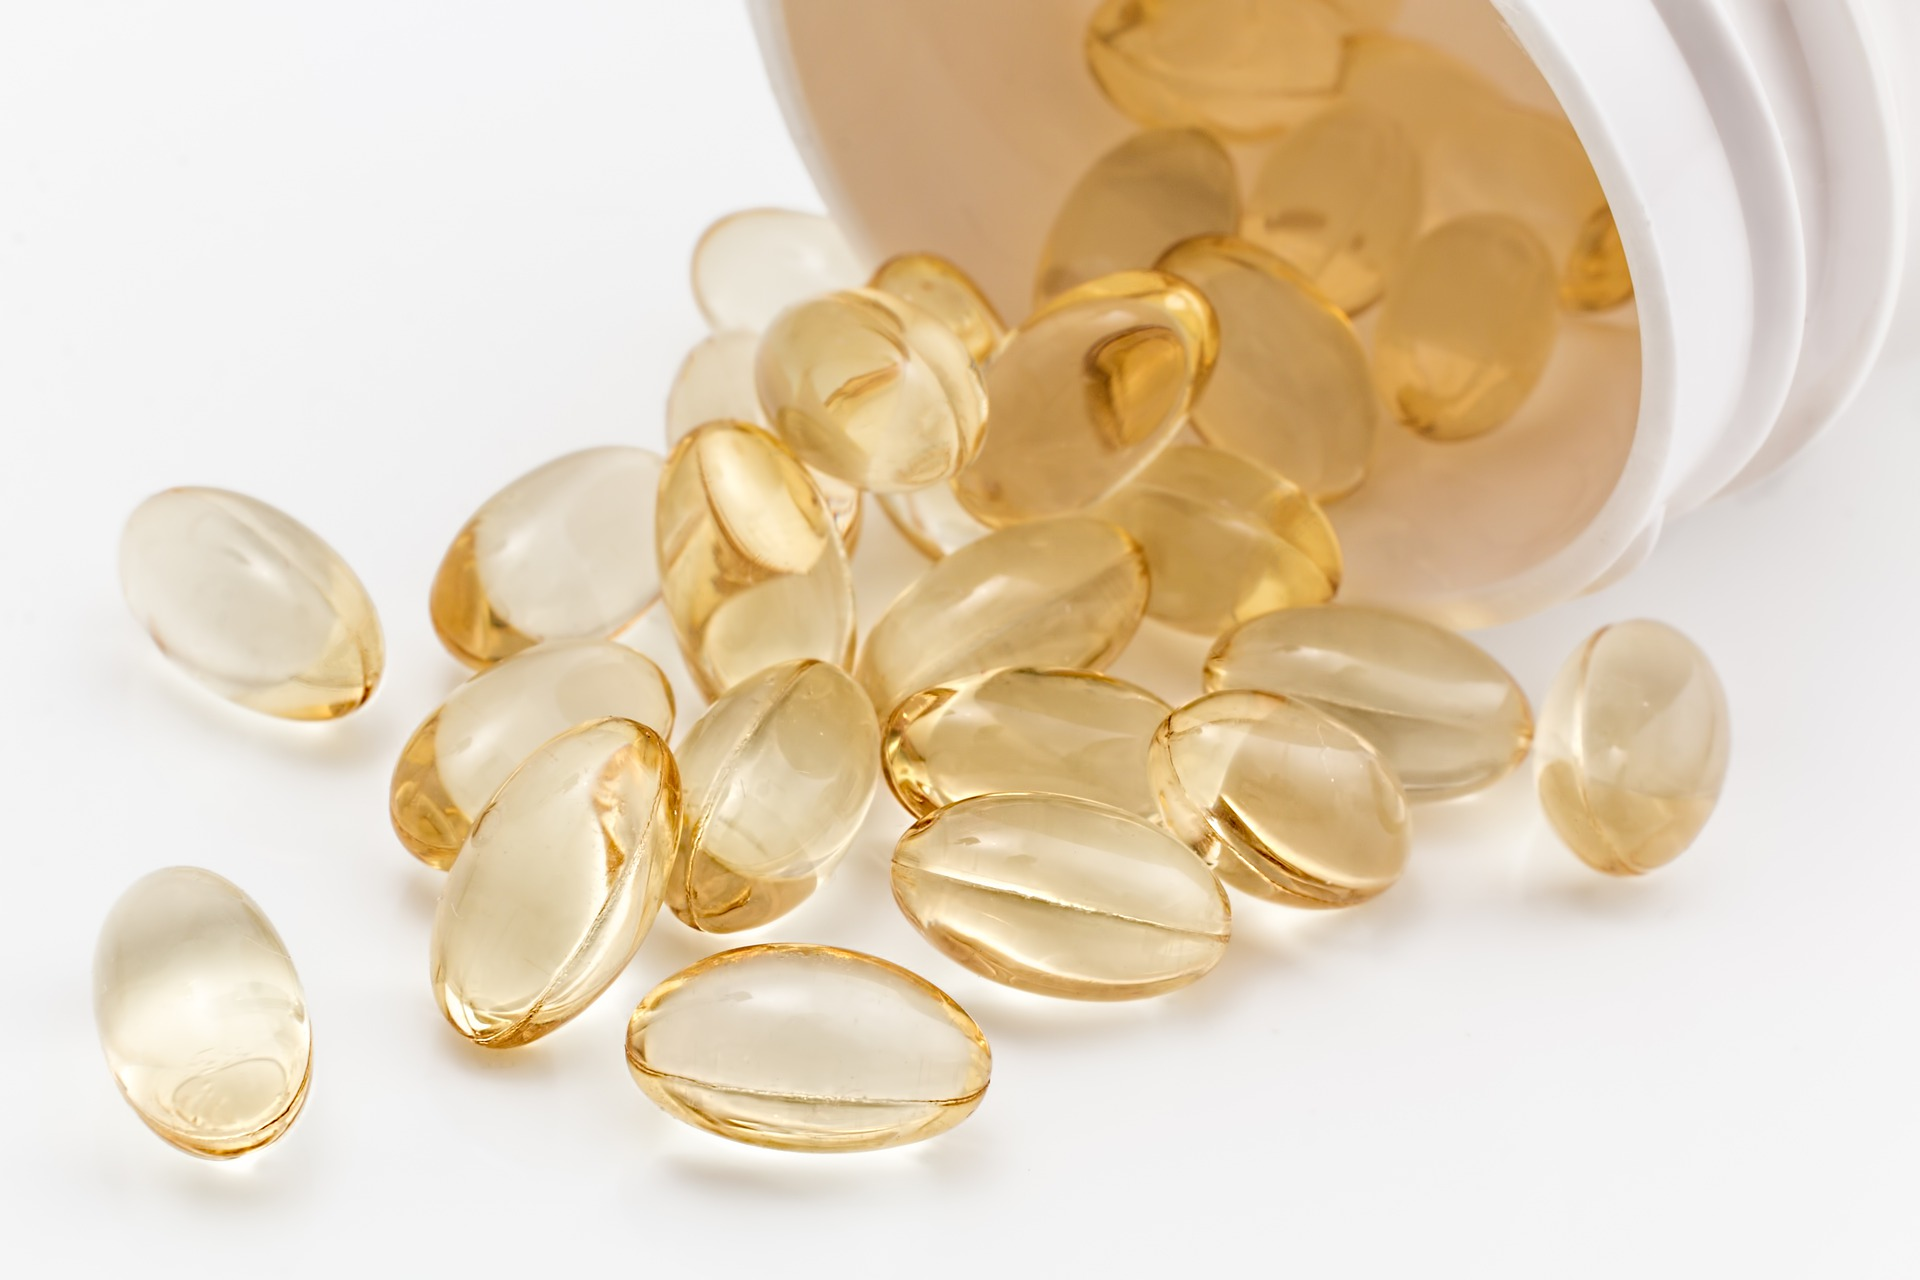 What Everyone Must Know About Dietary Supplement